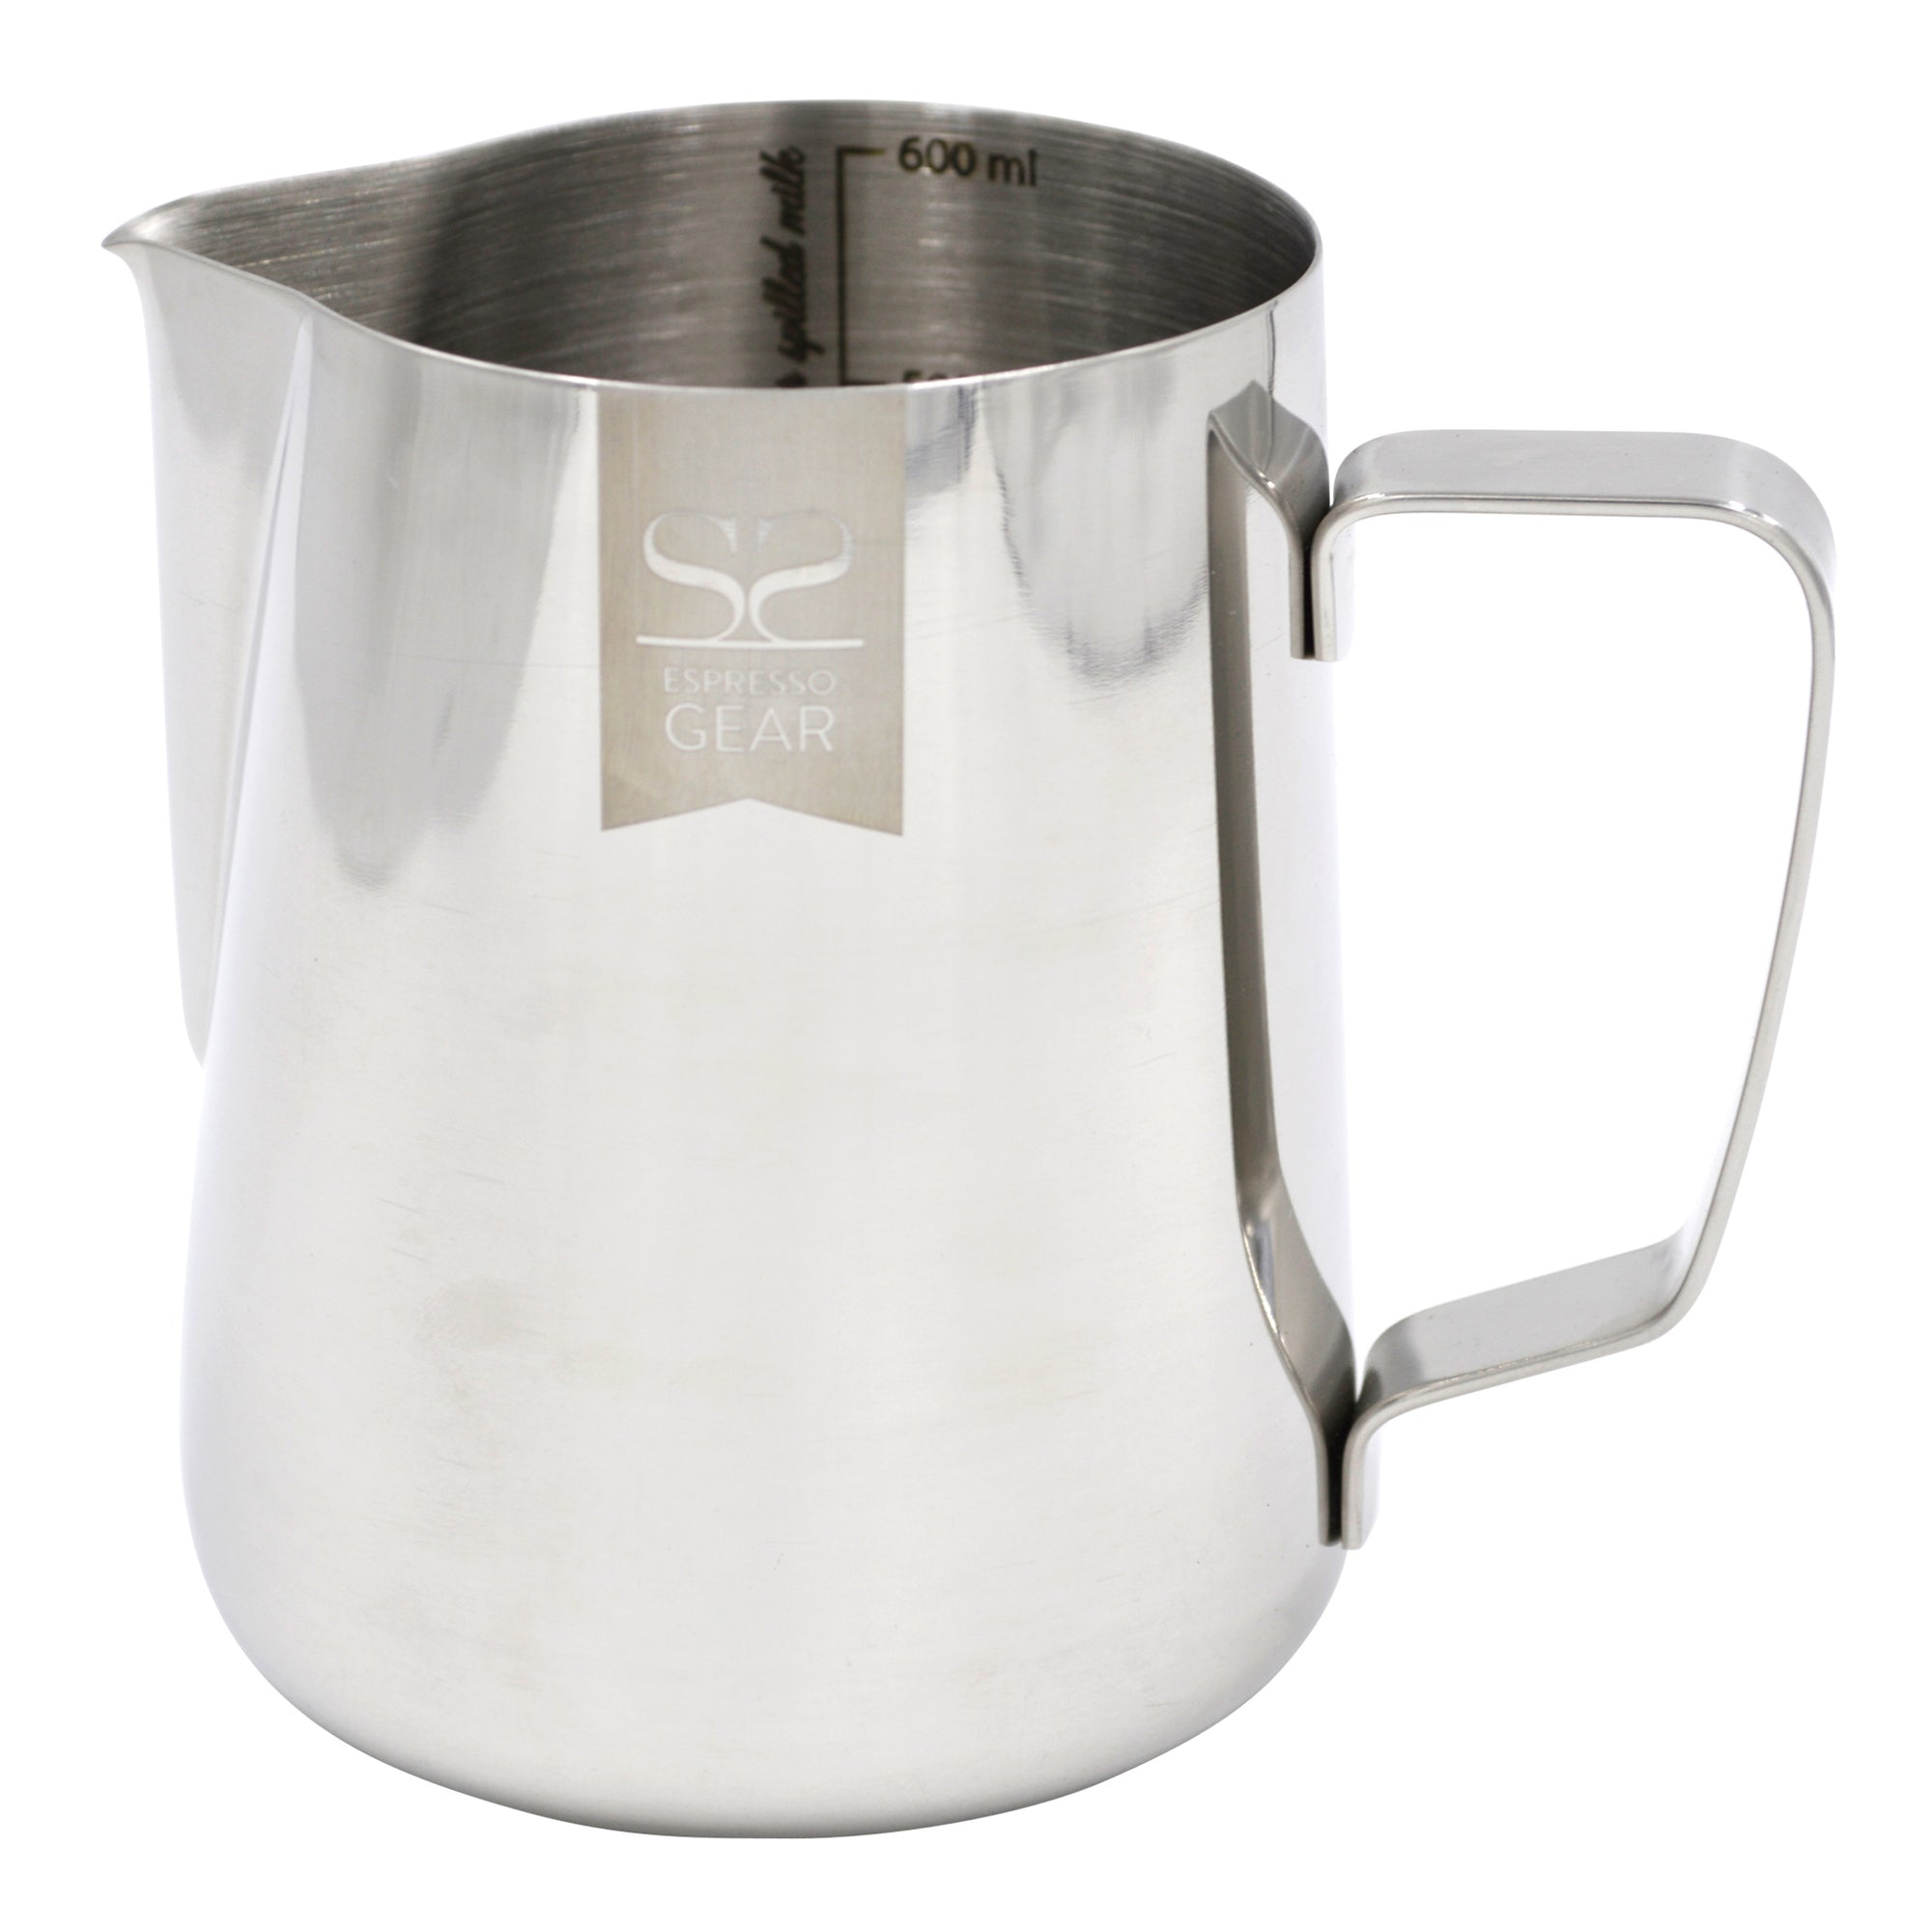 Pitcher Classic 900ml w/ measuring line - Espresso Gear - Espresso Gear